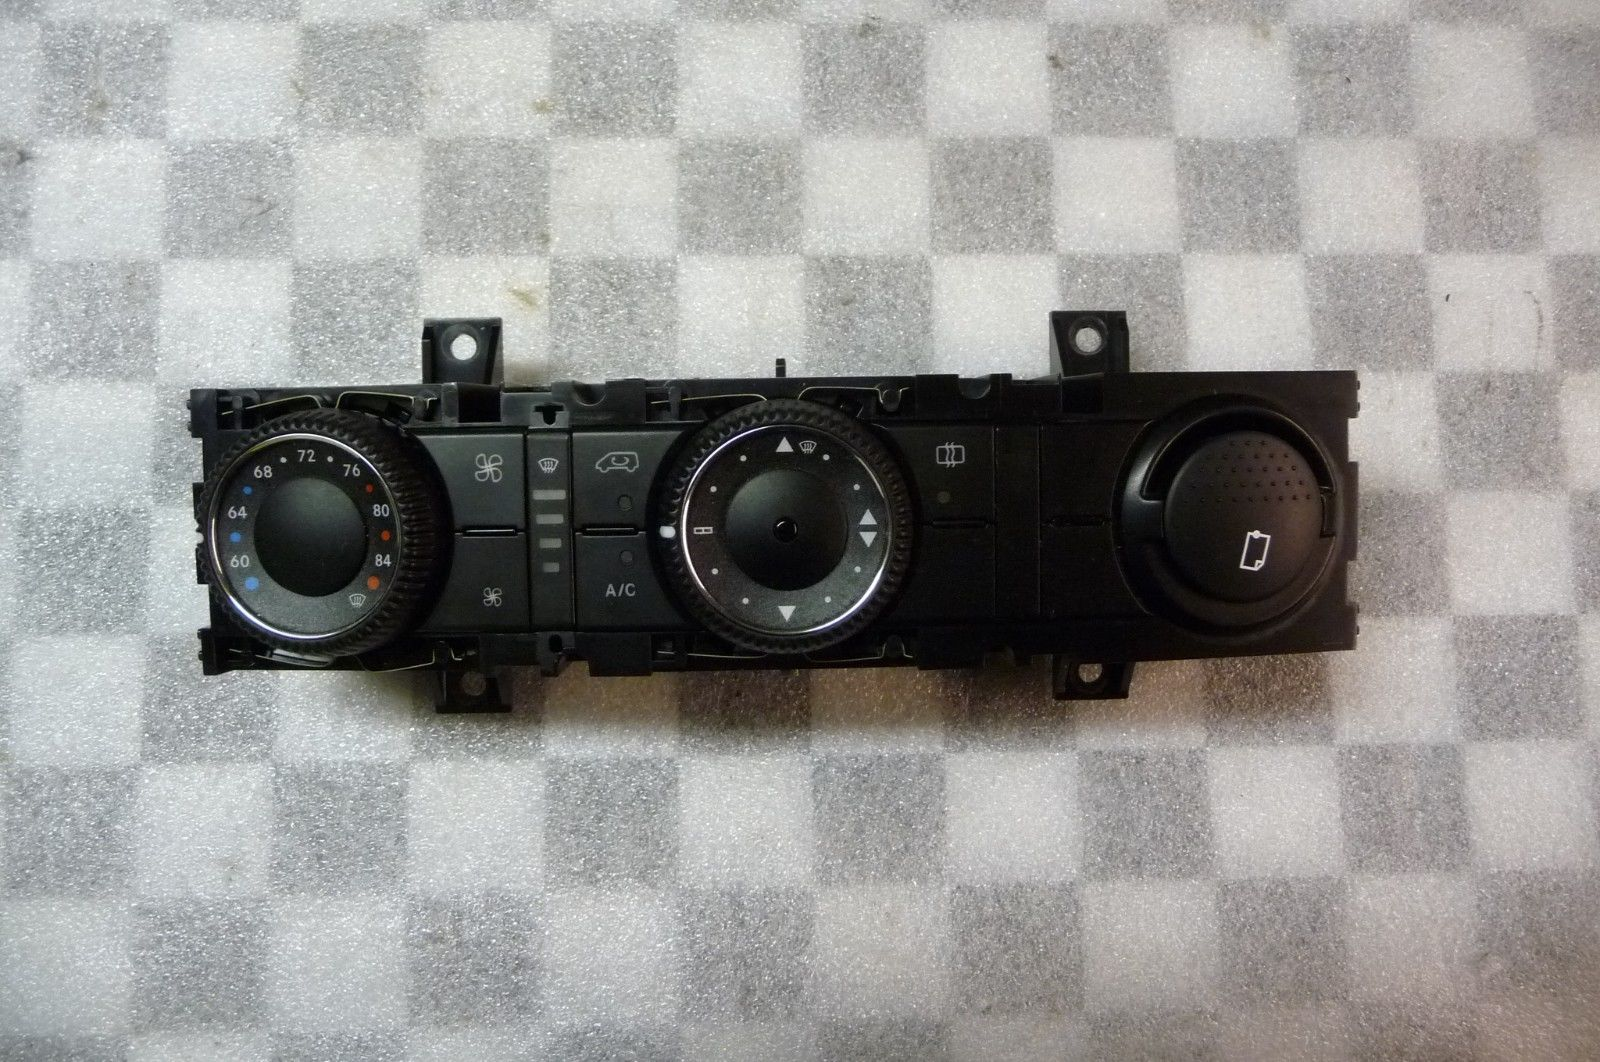 2010 2011 2012 2013 Mercedes Benz Sprinter 2500 3500 AC Air Conditioner Heater Control A9068303085 ; 9068302285 OEM OE